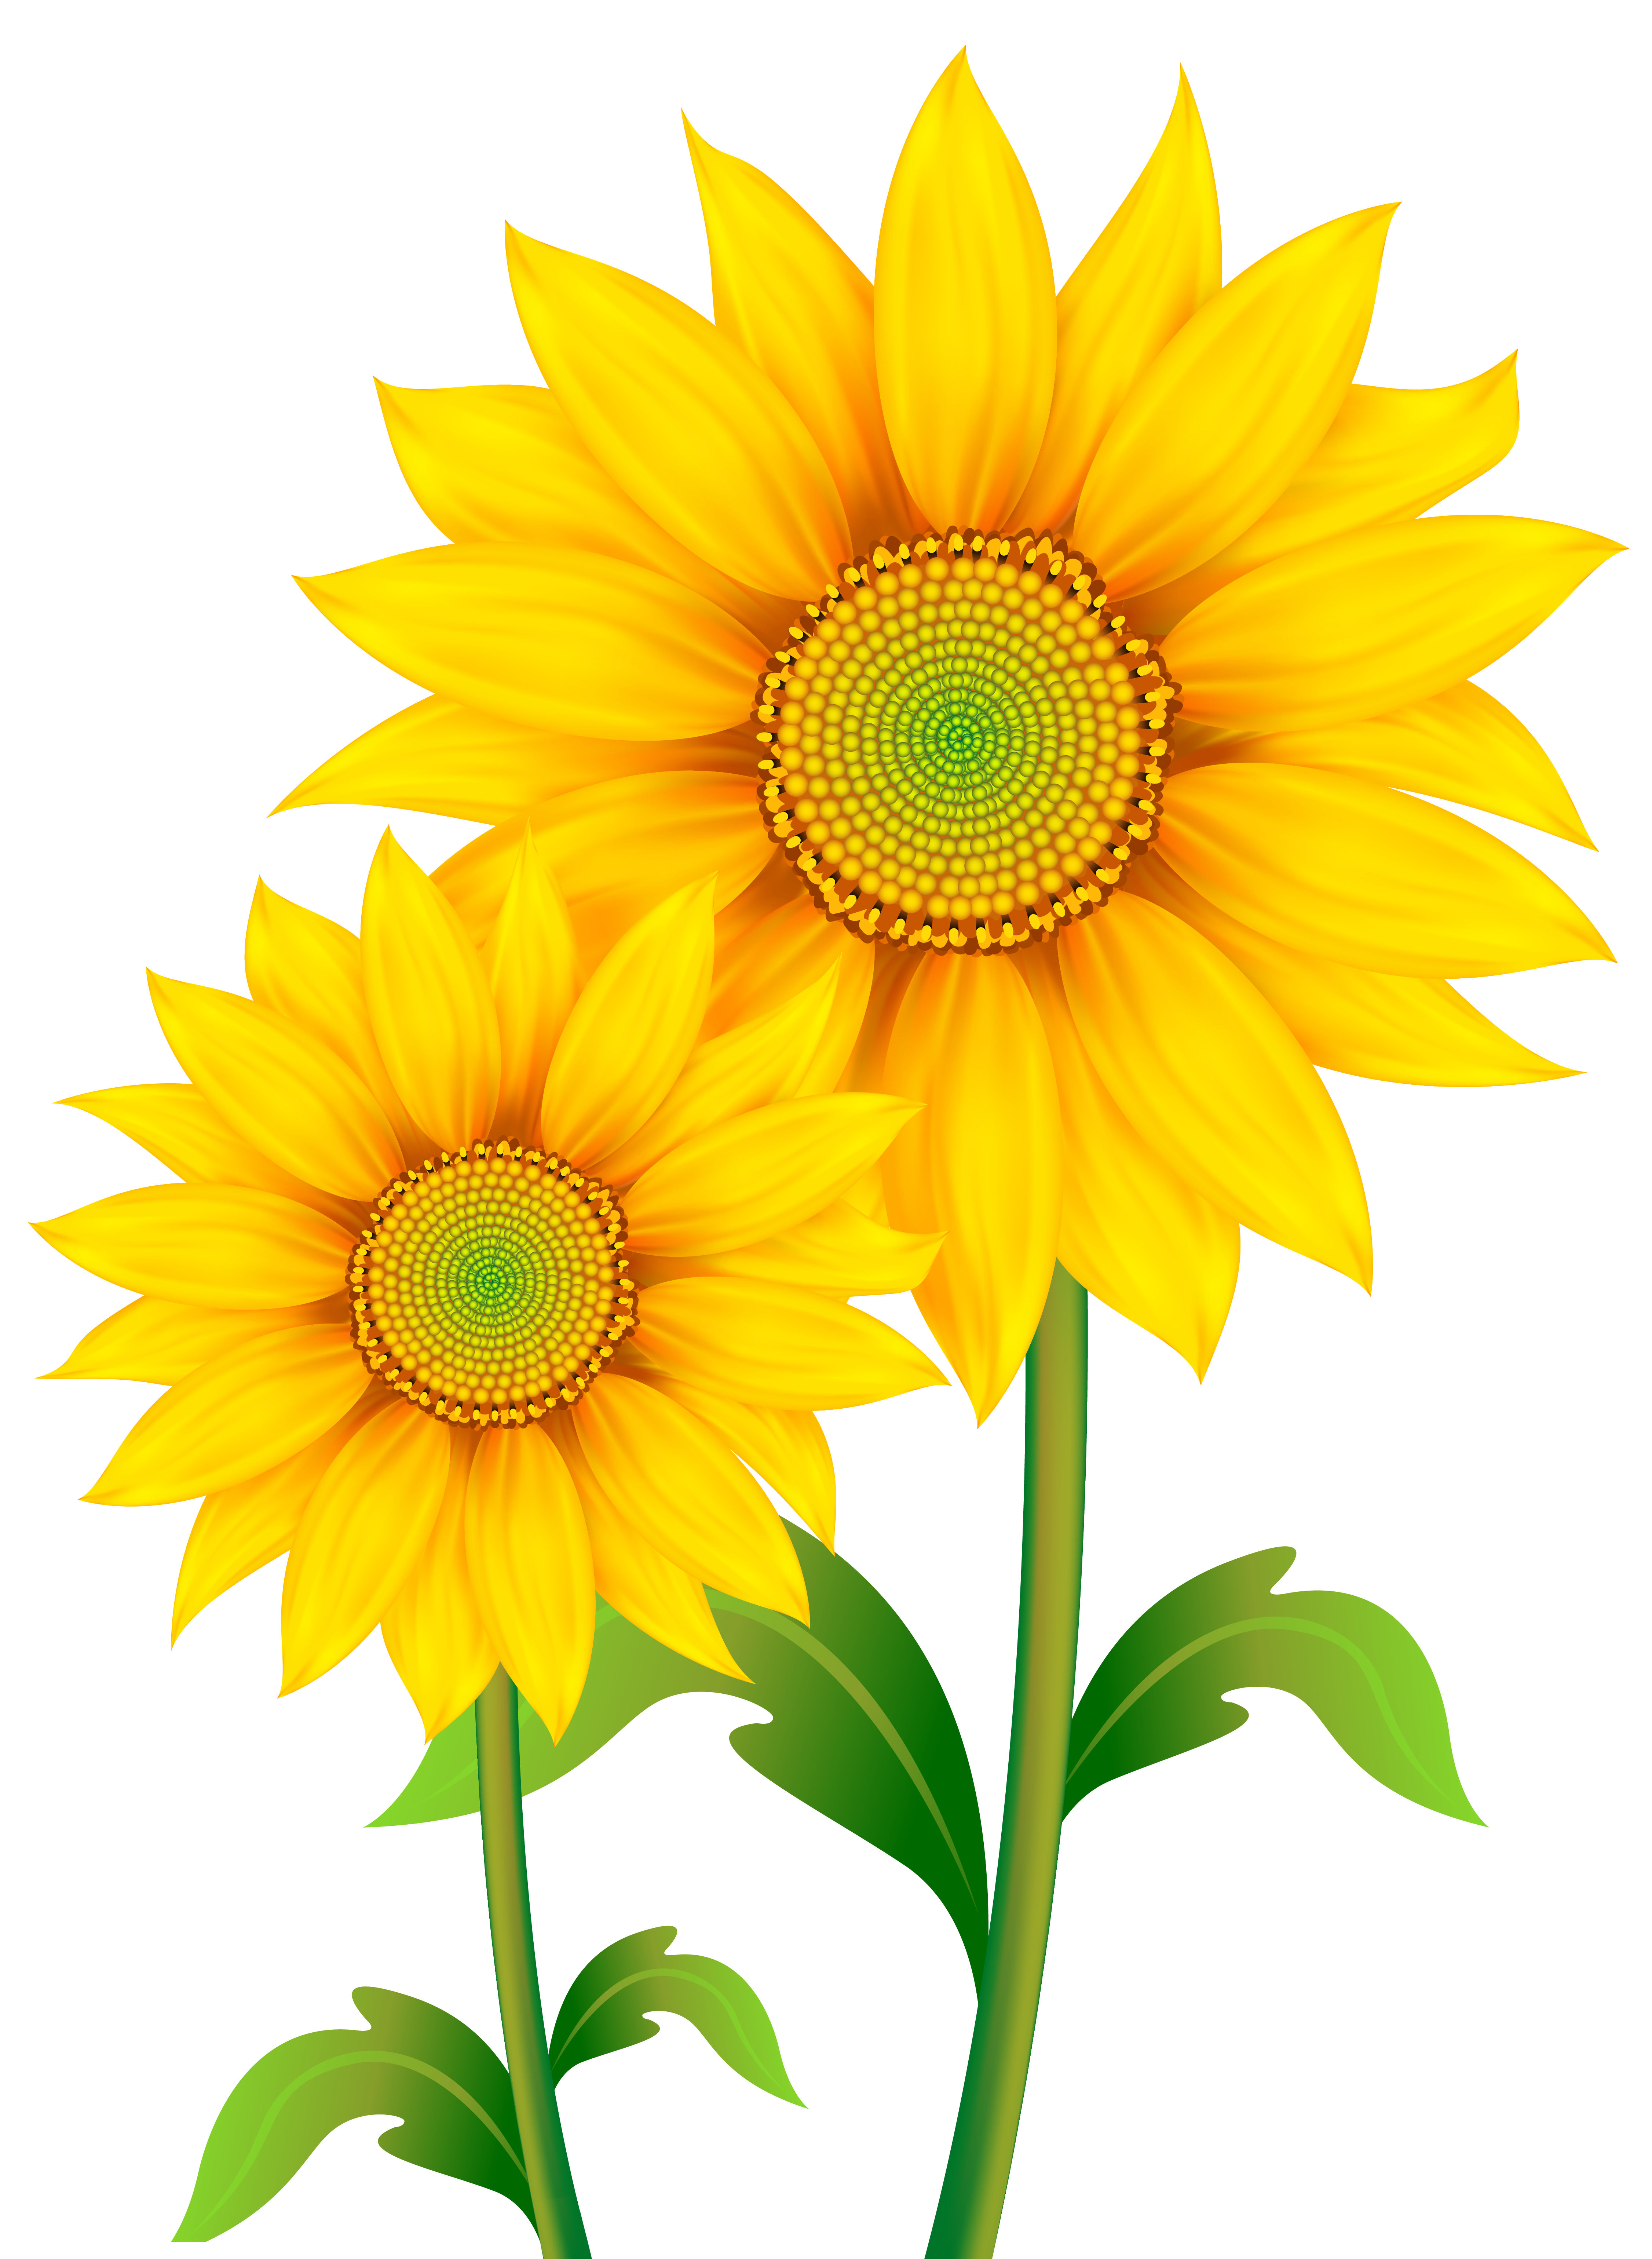 graphic freeuse library Vector sunflower sun flower. Transparent sunflowers clipart png